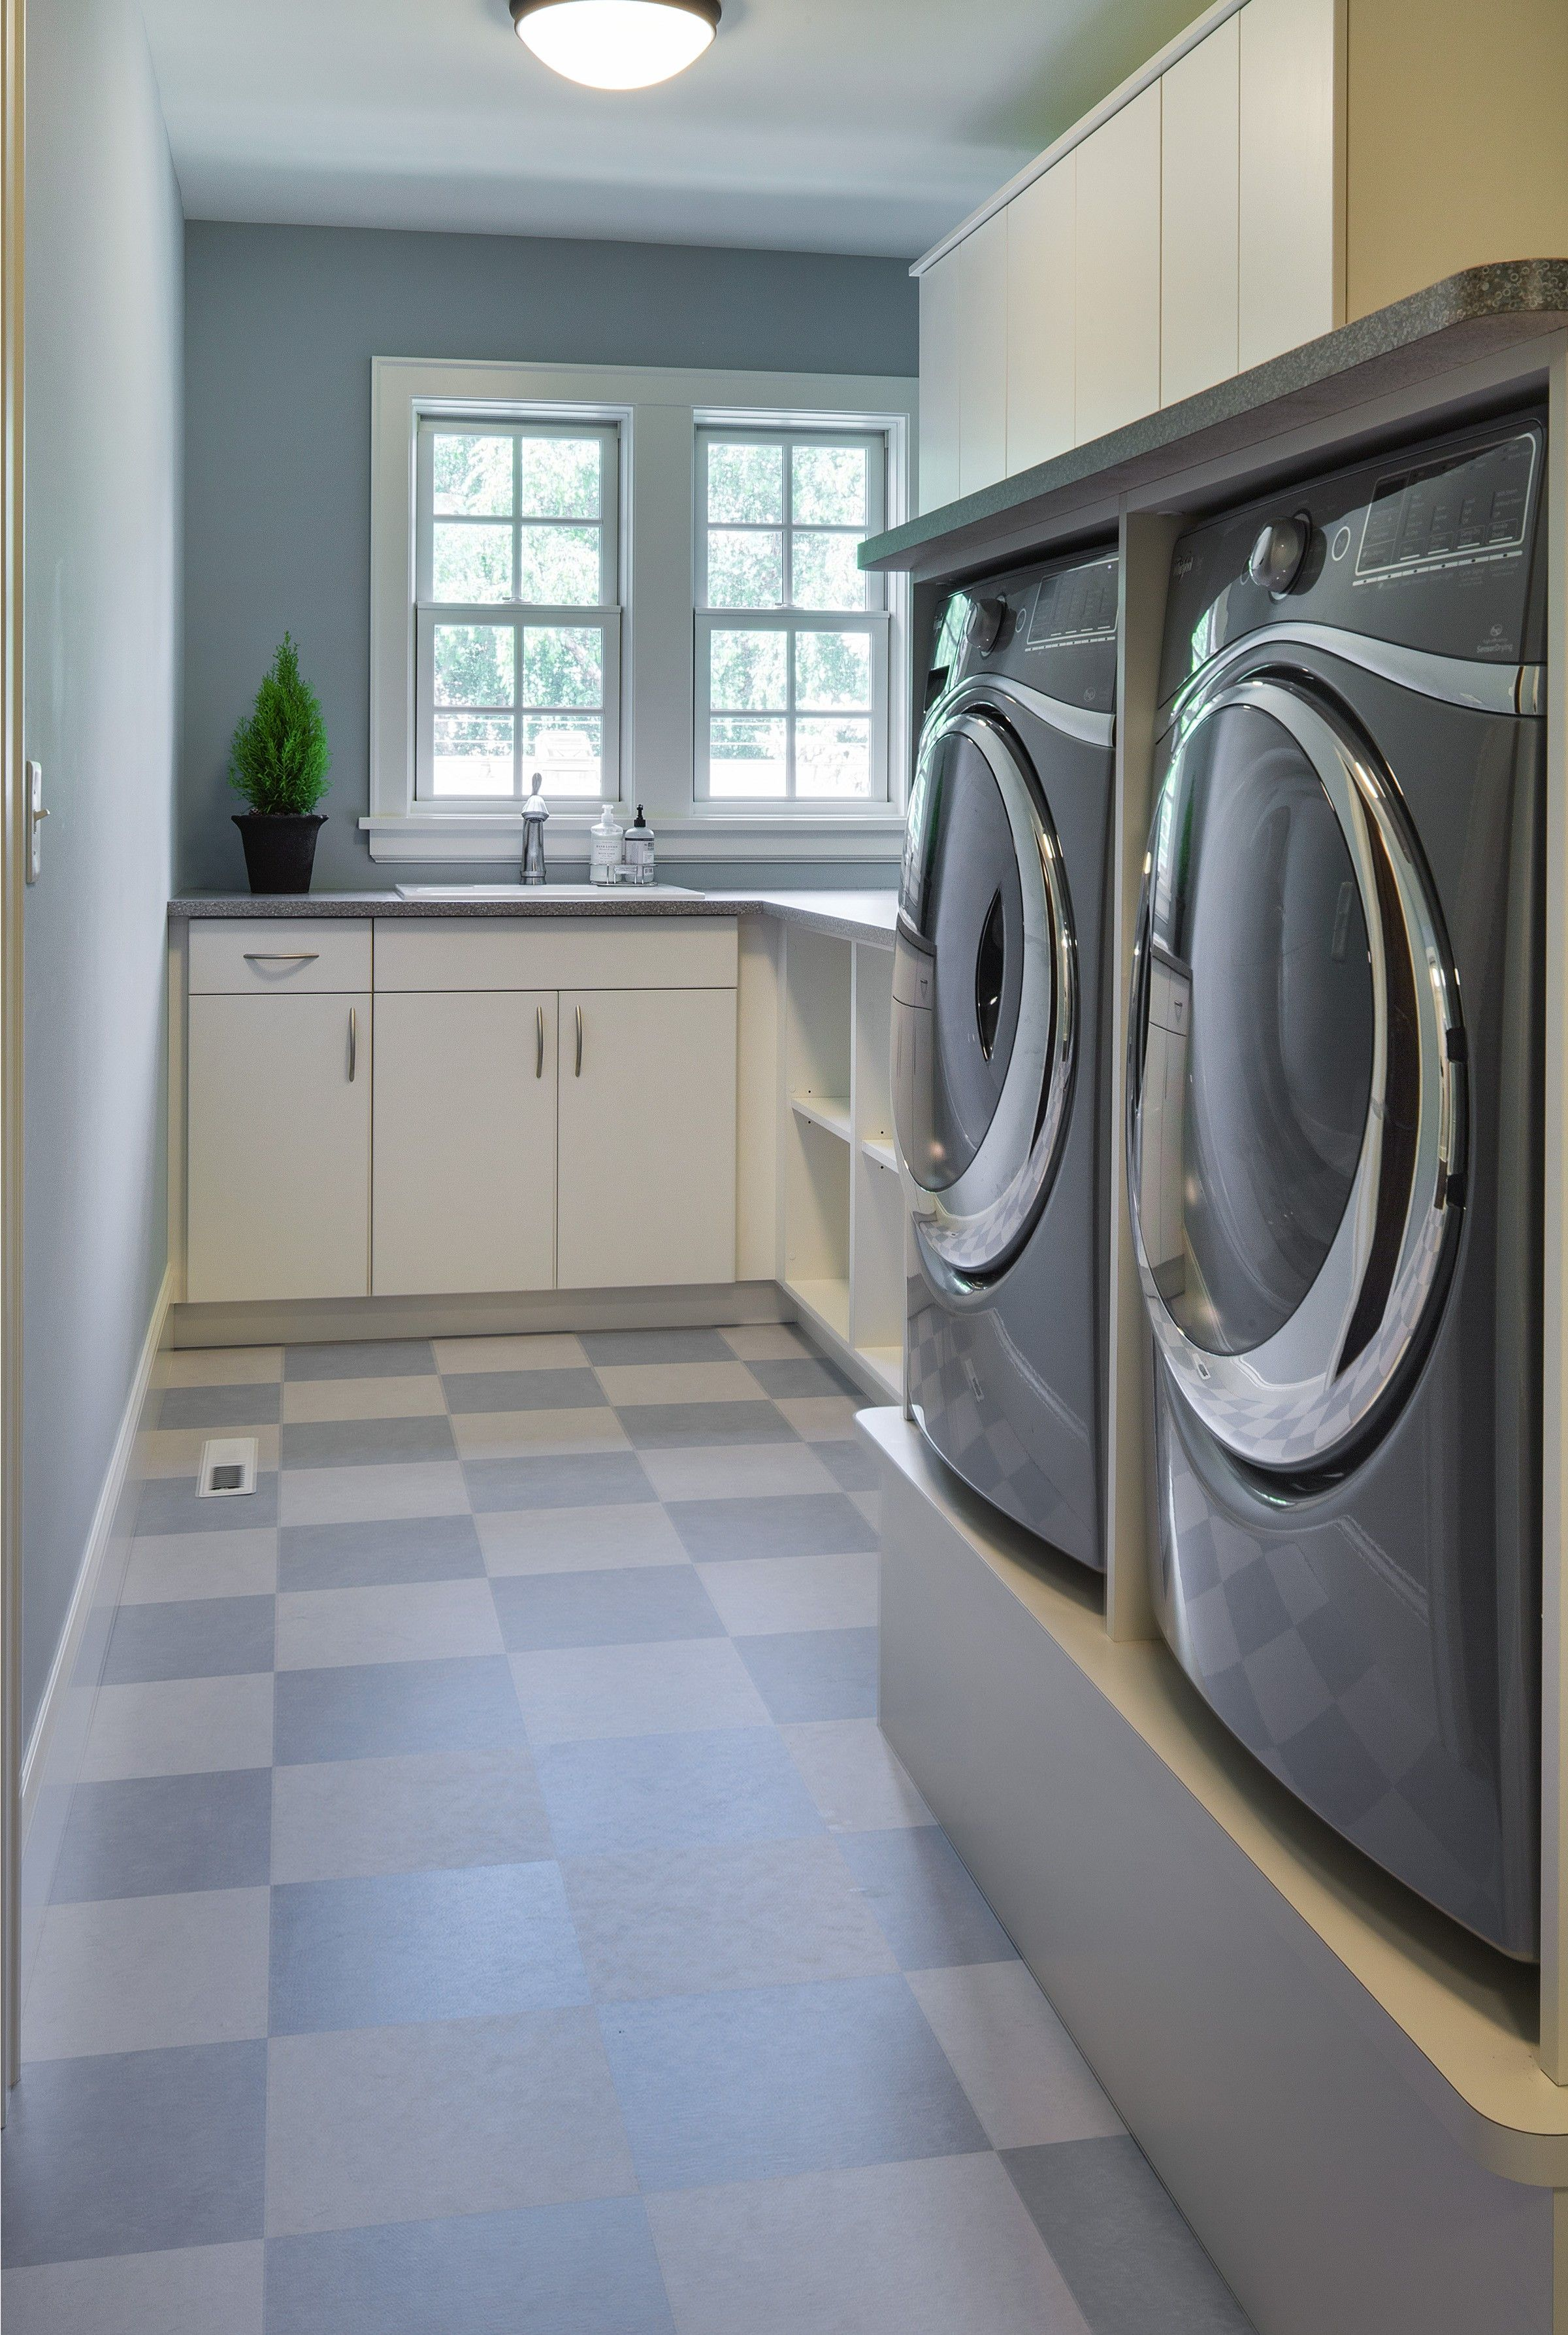 Laundry room marmoleum mct checkerboard laundry pinterest laundry room marmoleum mct checkerboard dailygadgetfo Images